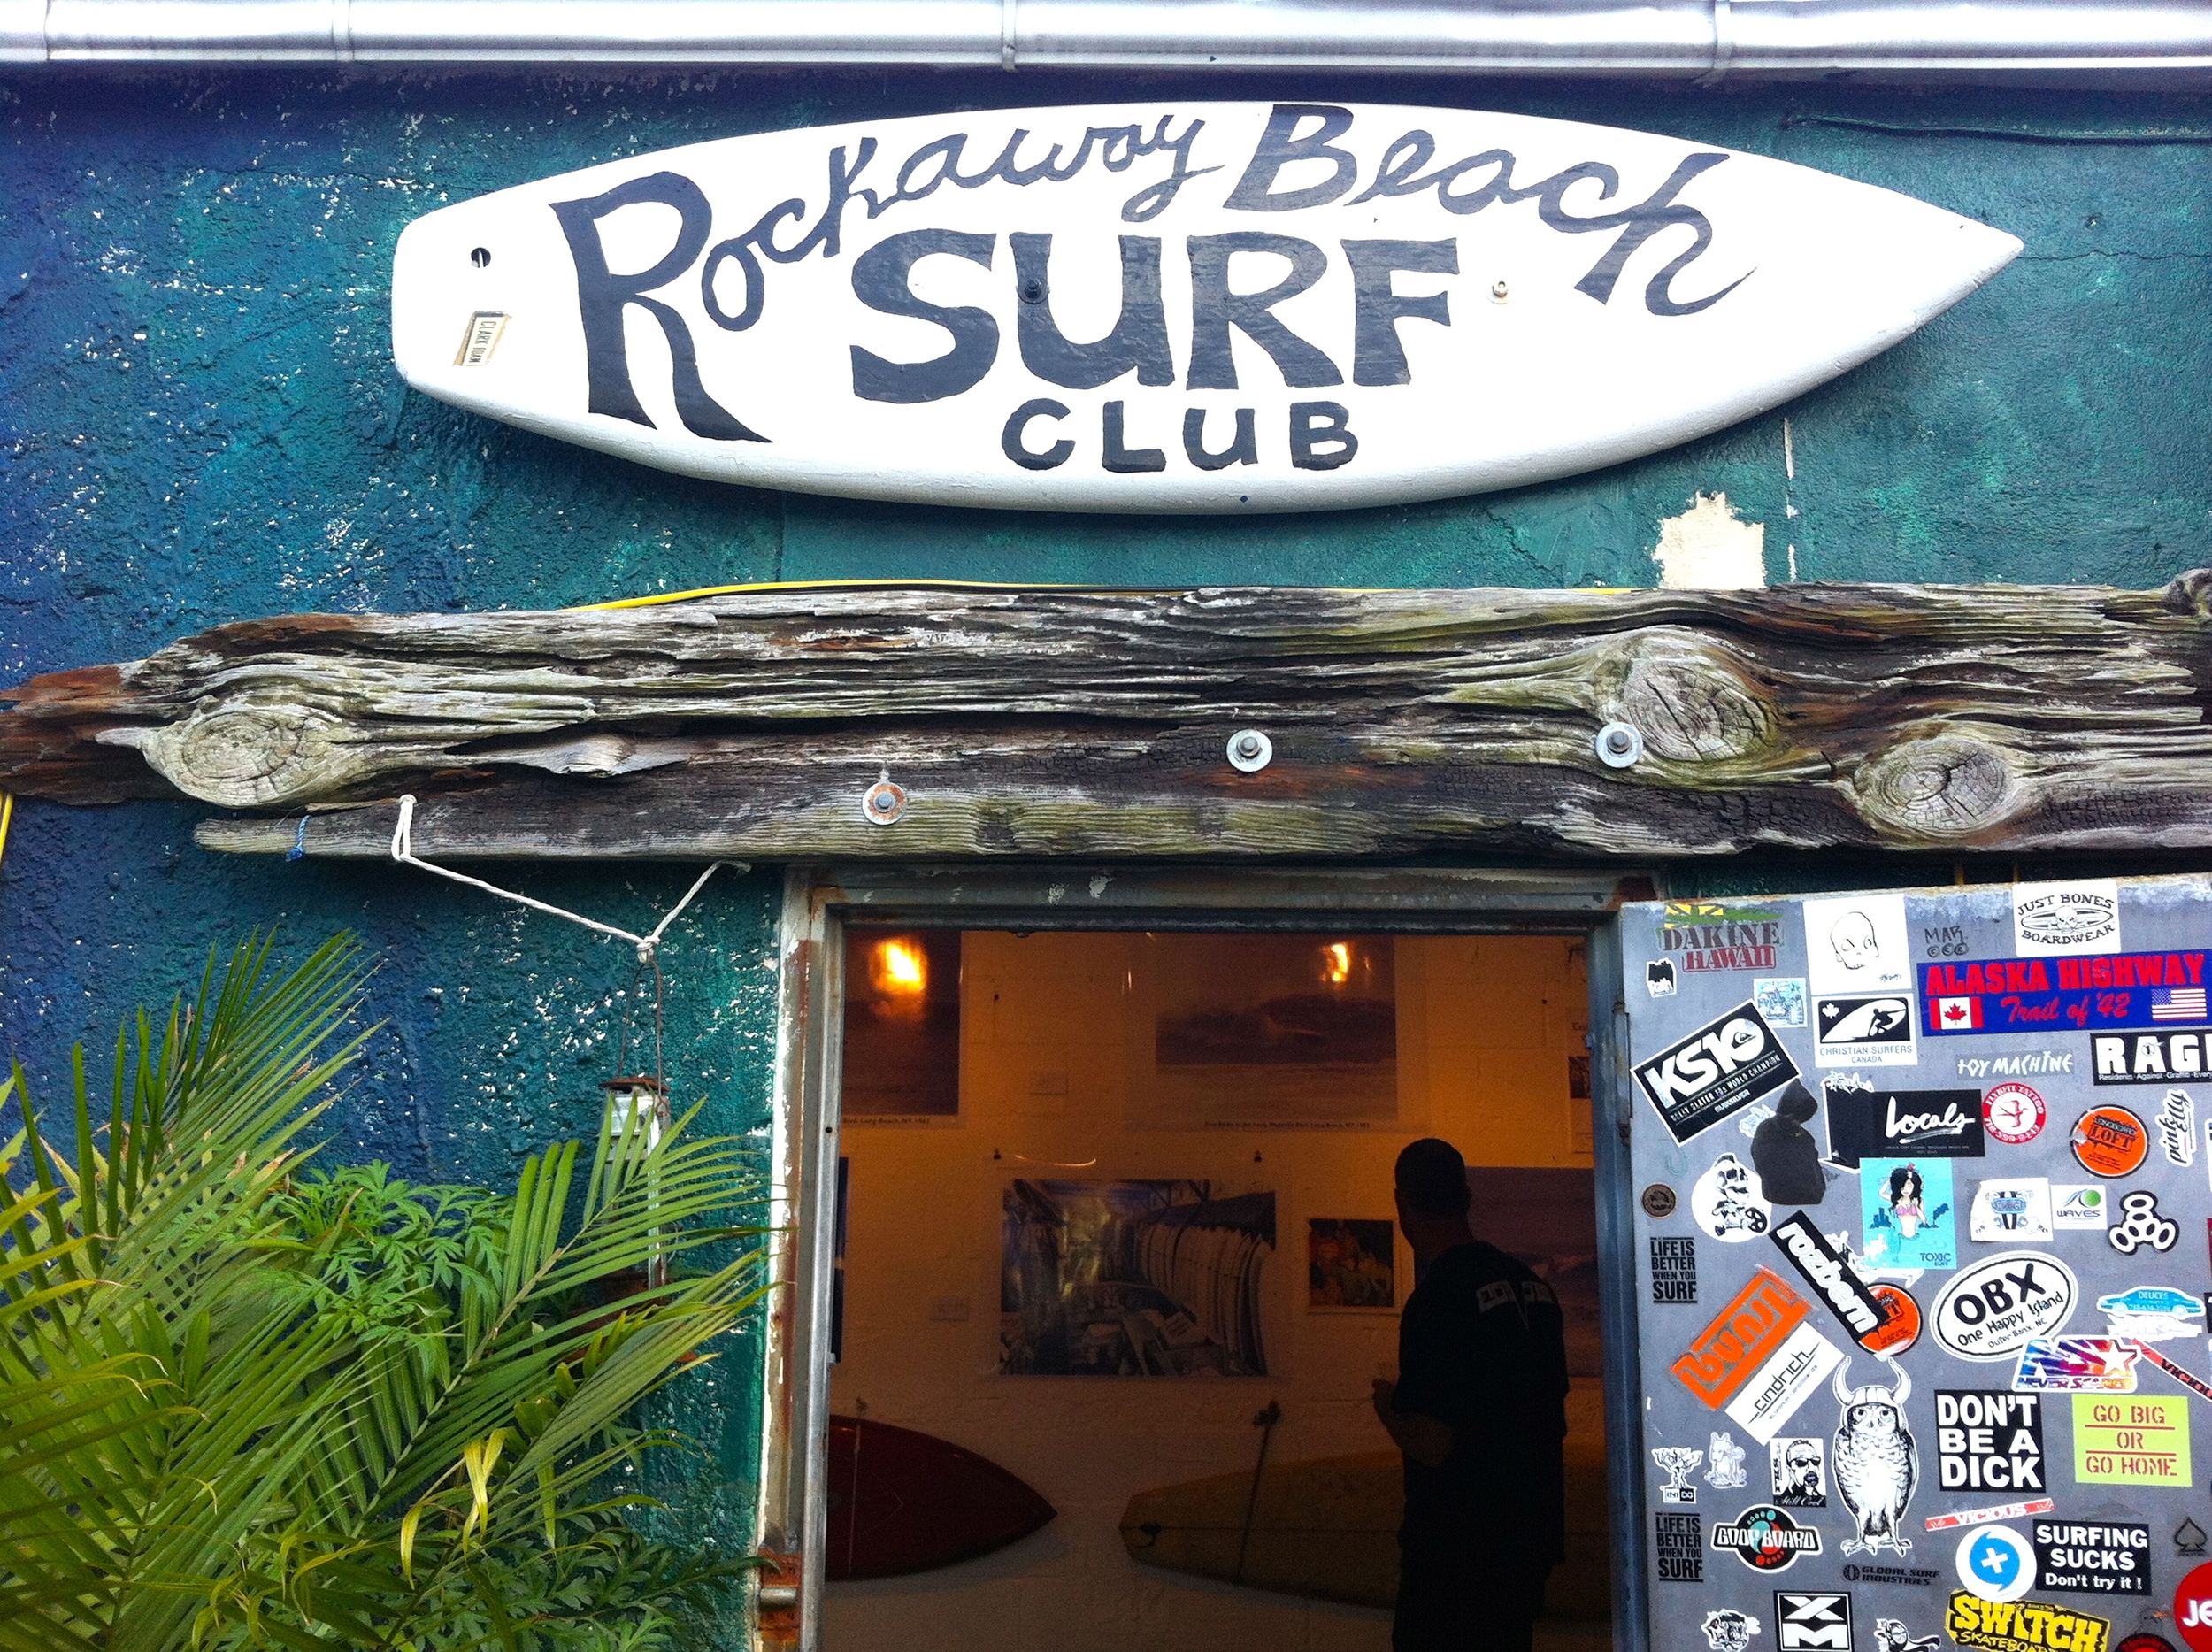 Rockaway Beach Surf Club   A place oozing with great vibes, The Surf Club is devoted to the love of surfing and is a staple in the local neighborhood. This is the perfect place to come after a lesson with indoor seating and a fantastic patio area. Not to mention, some of New York's best tacos! If you can't stop by after a lesson be sure to come to our 4th of JulyParty hosted hereor another one of our events in the future!